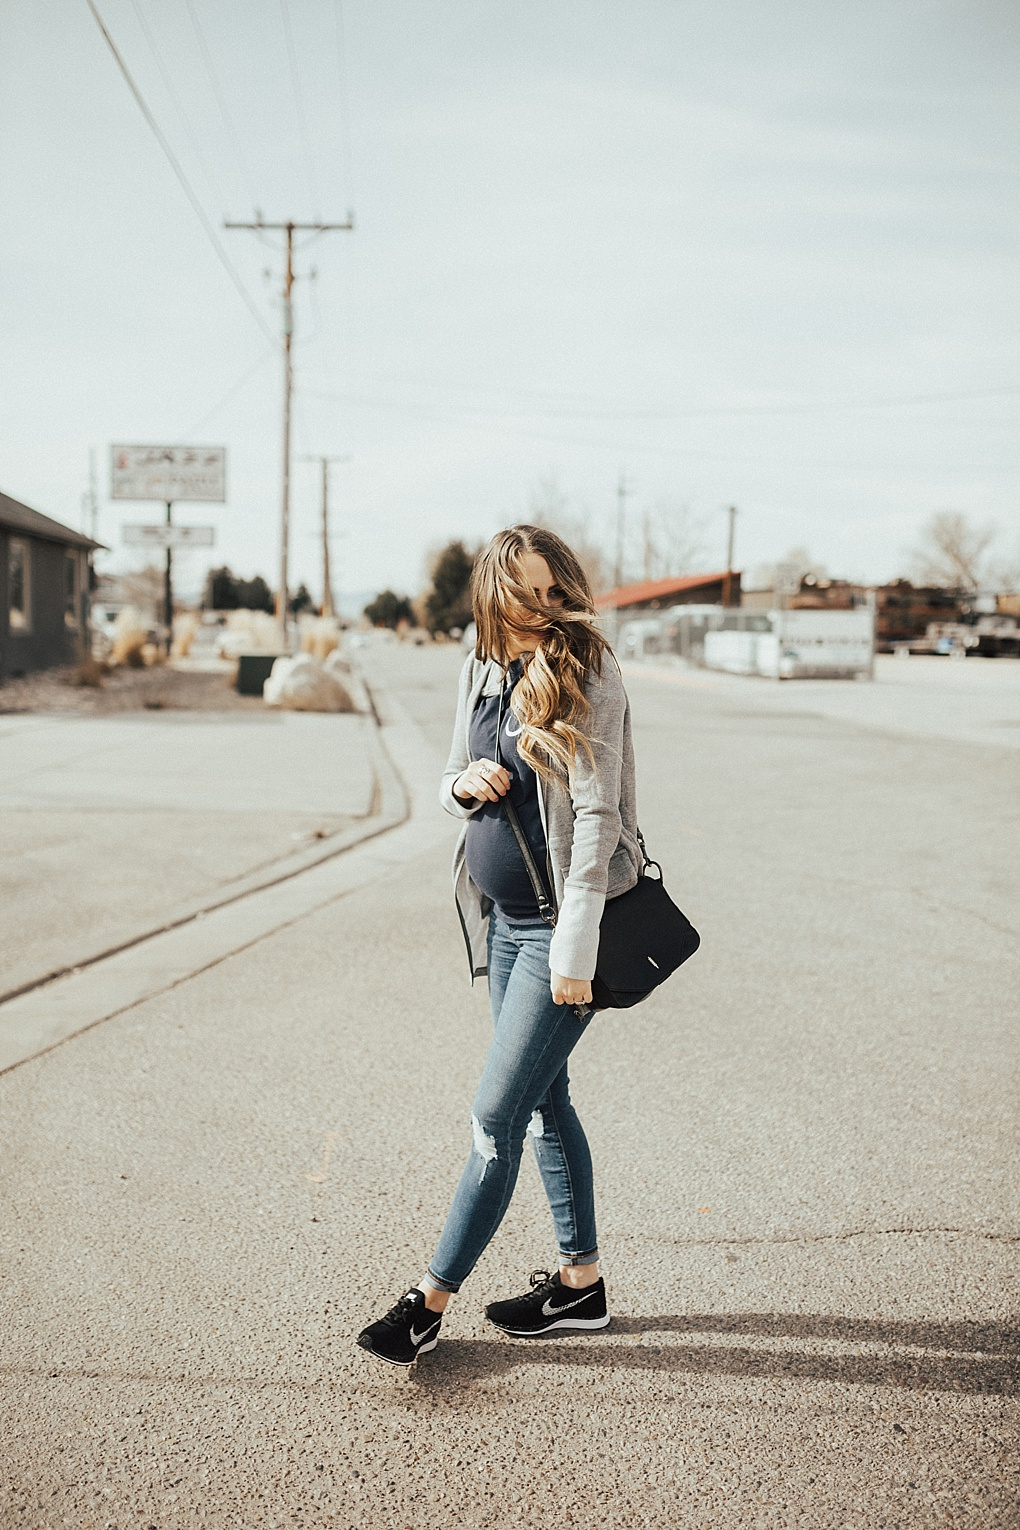 SAVE this ASAP for the perfect tips on how to style a momiform look thanks to Utah Style Blogger Dani Marie.